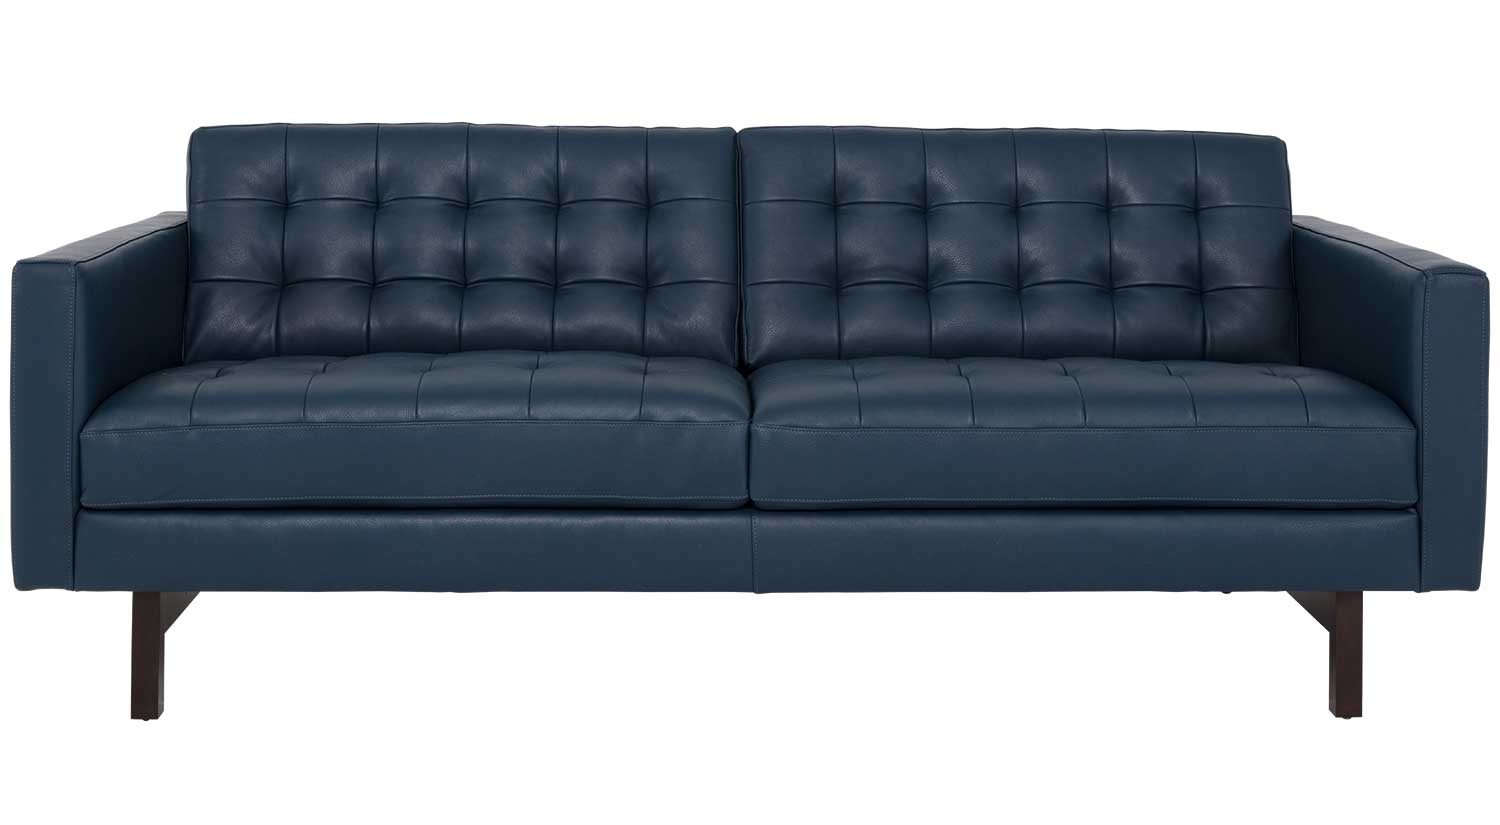 Circle Furniture – Parker Sofa | Designer Sofas Boston | Circle Intended For Parker Sofa Chairs (Image 4 of 25)